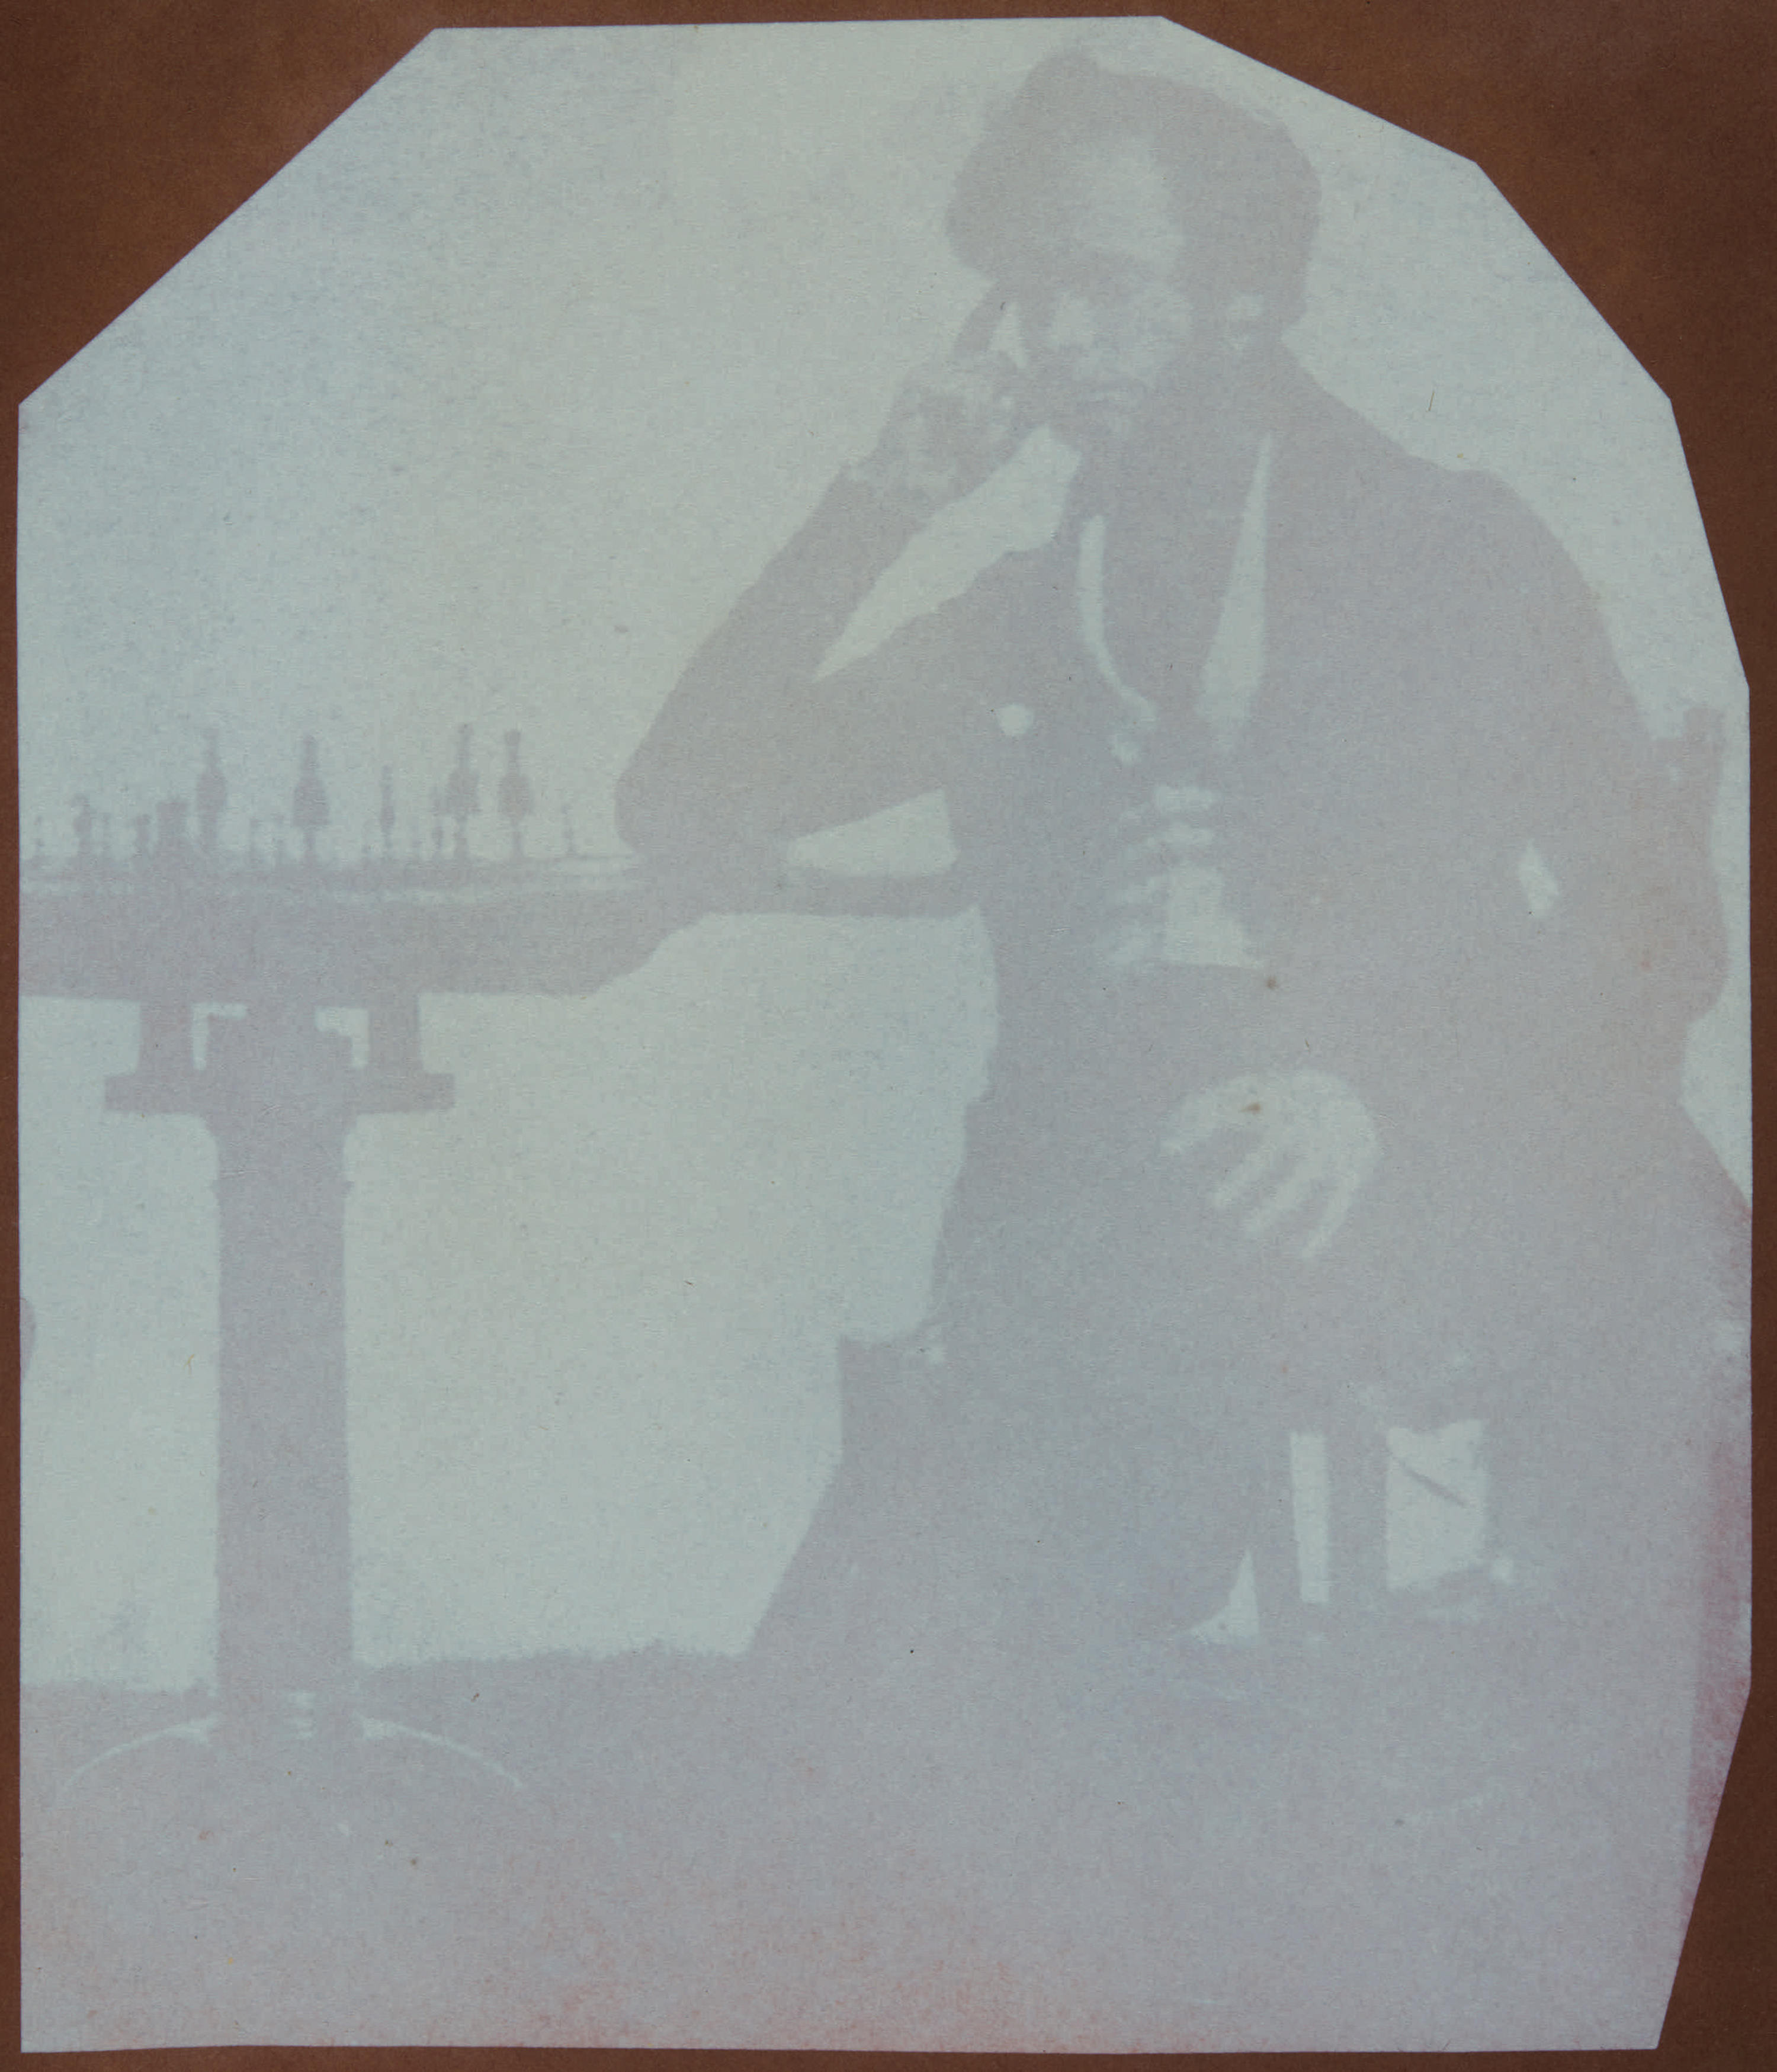 Fotó: William Henry Fox Talbot:<br />Nicolaas Henneman playing chess (Talbot's assistant)<br />William Henry Fox Talbot Archive<br />Courtesy of Sotheby's